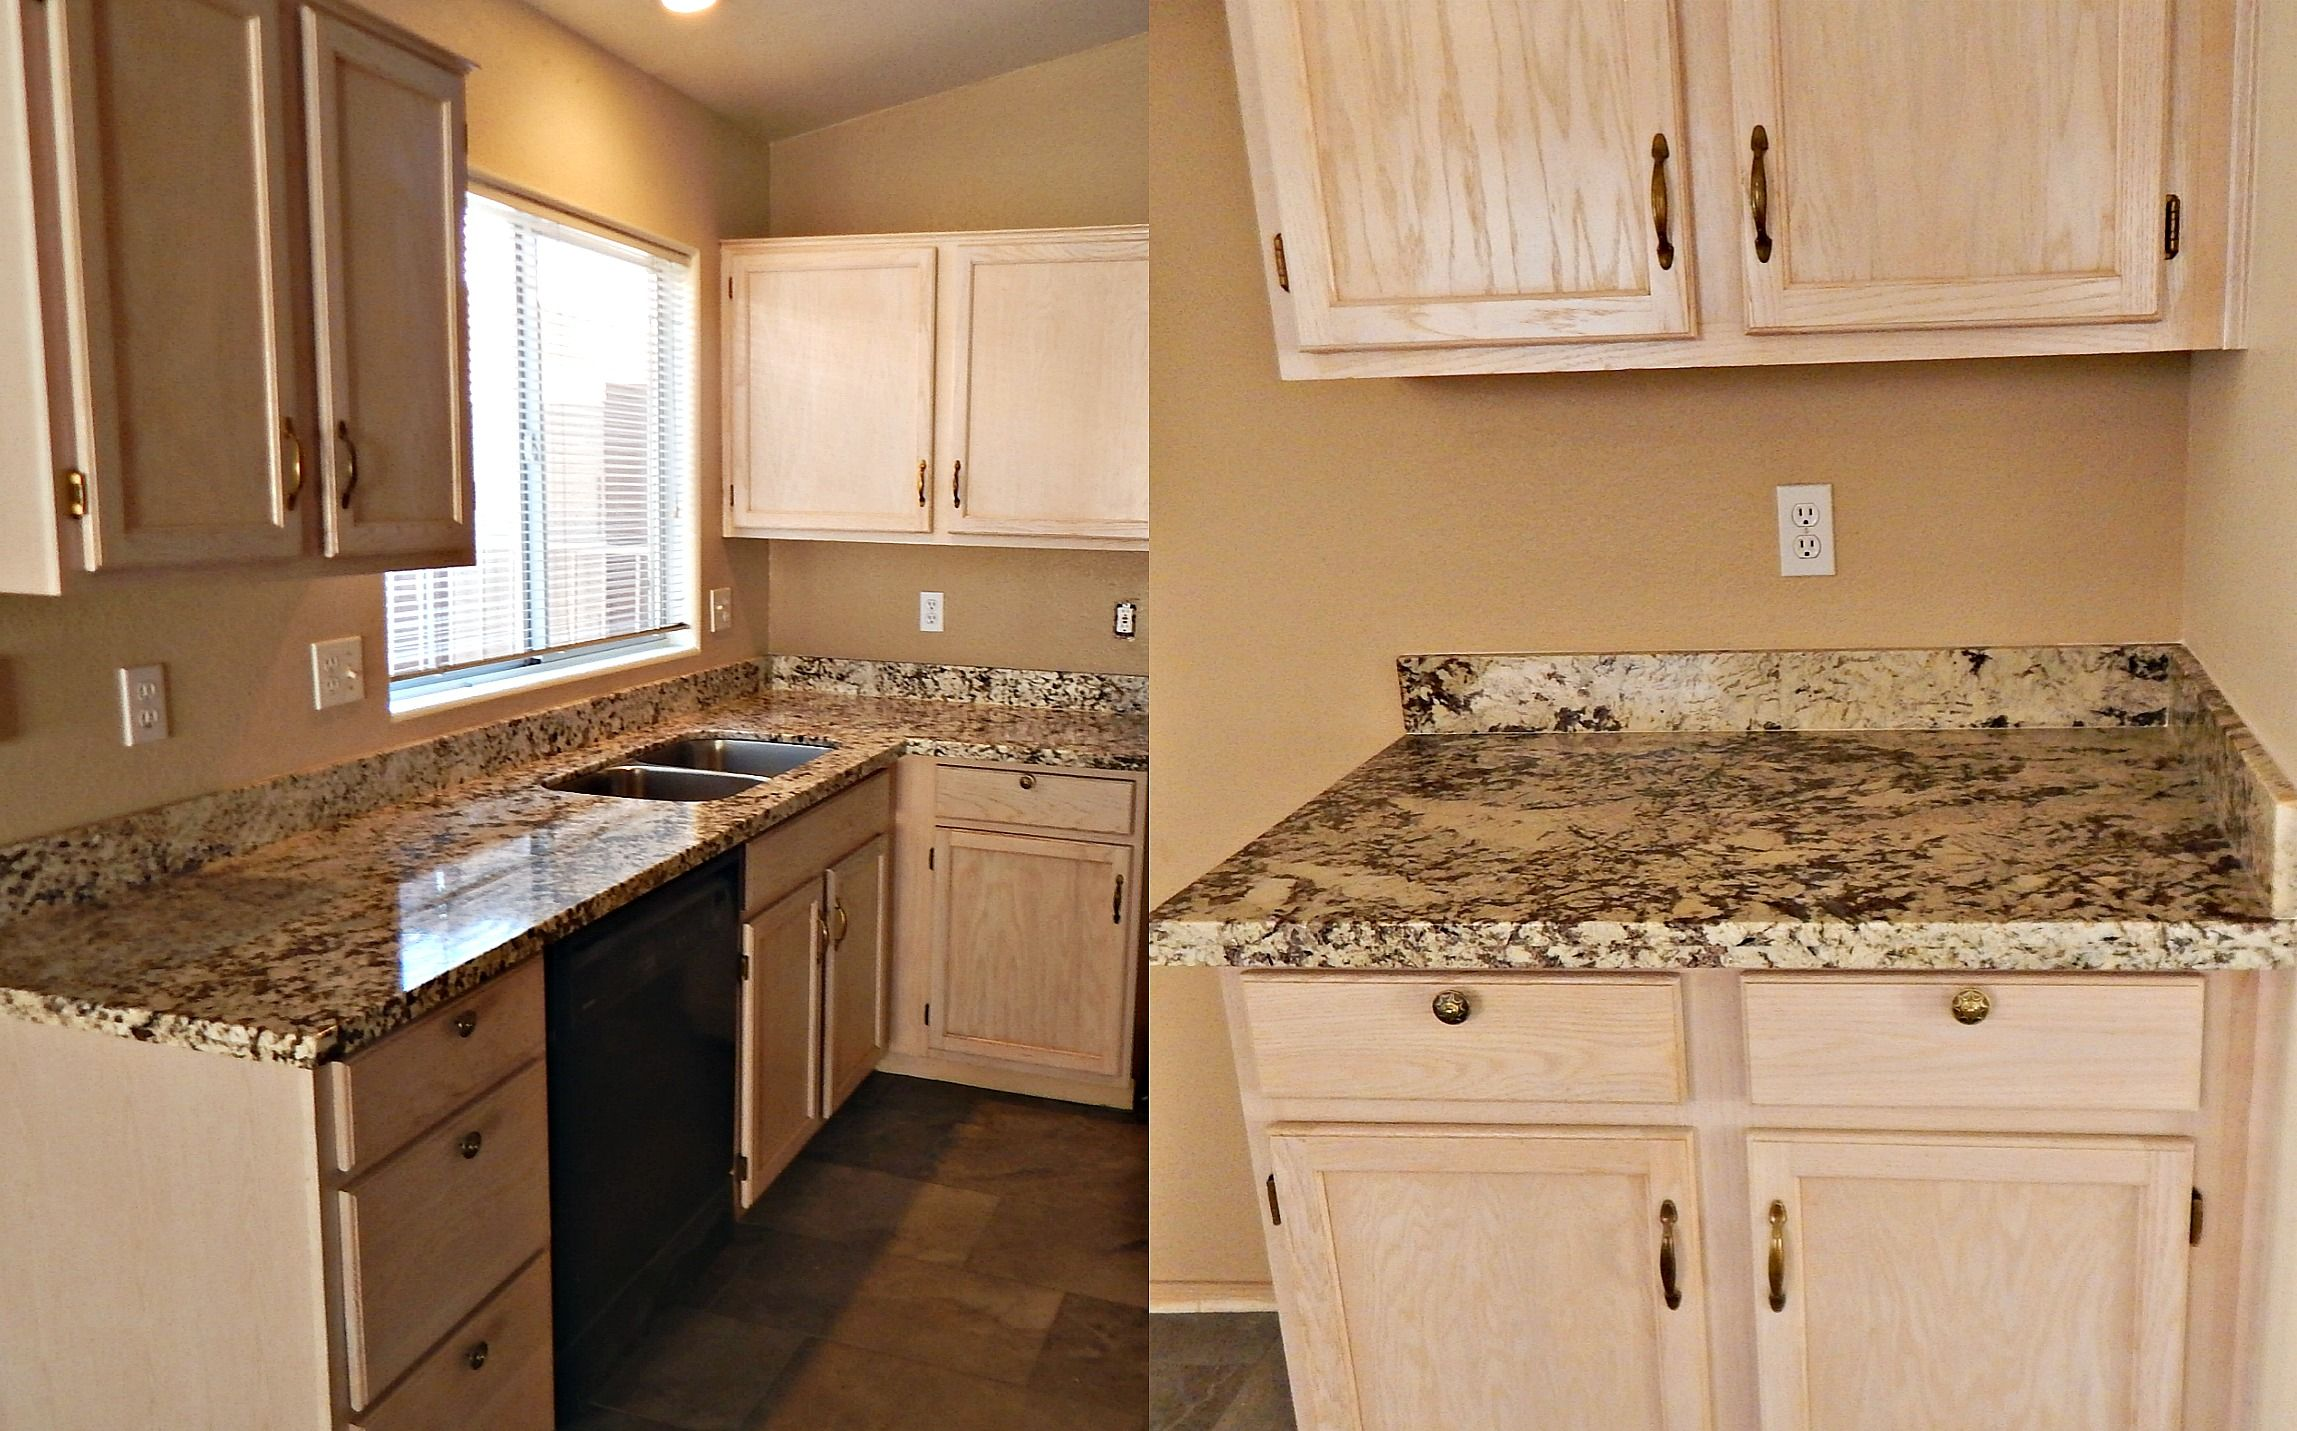 Estimate For Kitchen Remodel Countertop Remodel With Bianco Typhoon Granite Flat Polish Edge